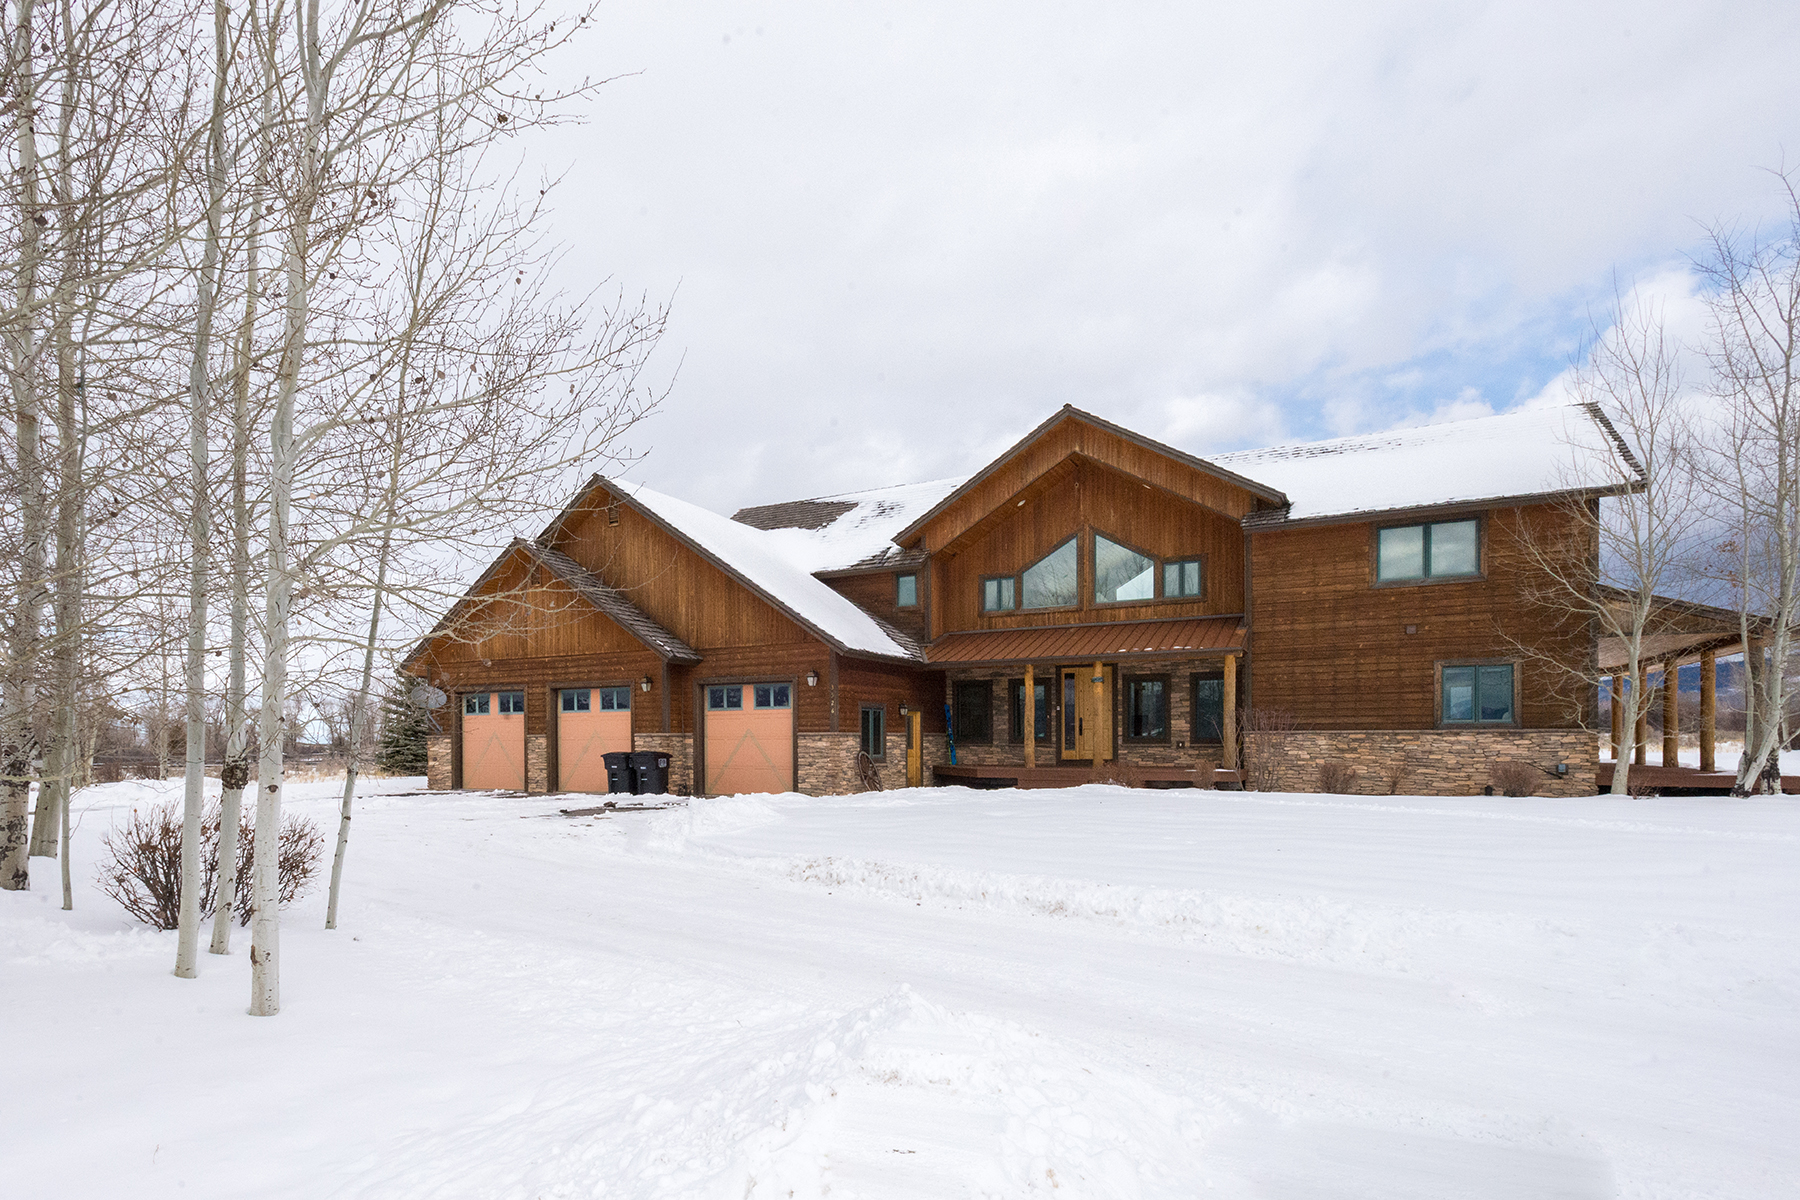 Single Family Home for Active at 3526 Edge Braid Ct Driggs, Idaho 83422 United States